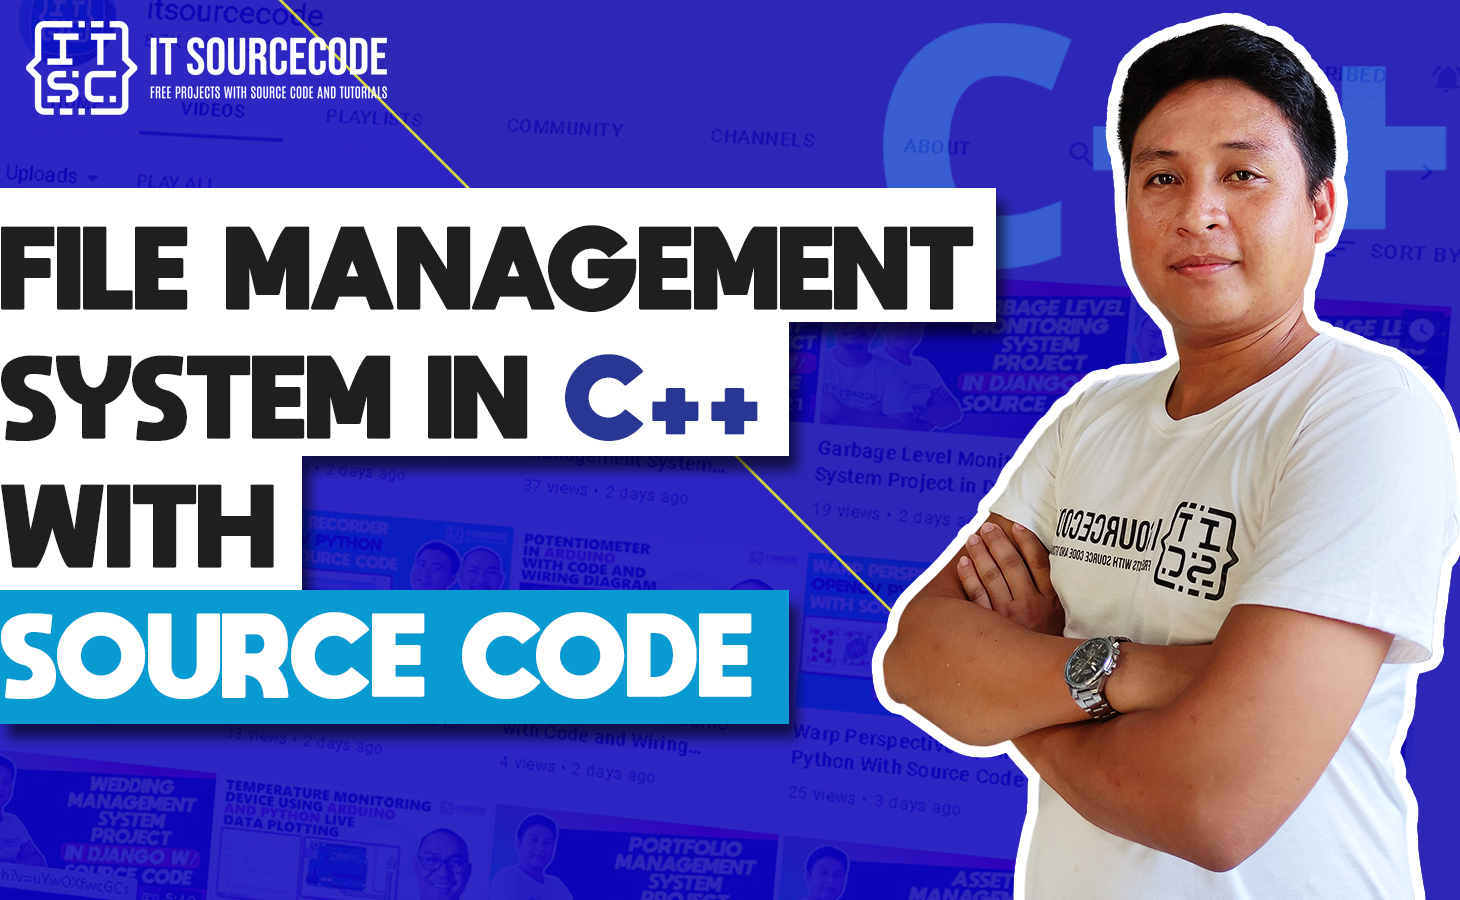 File Management System In C++ With Source Code